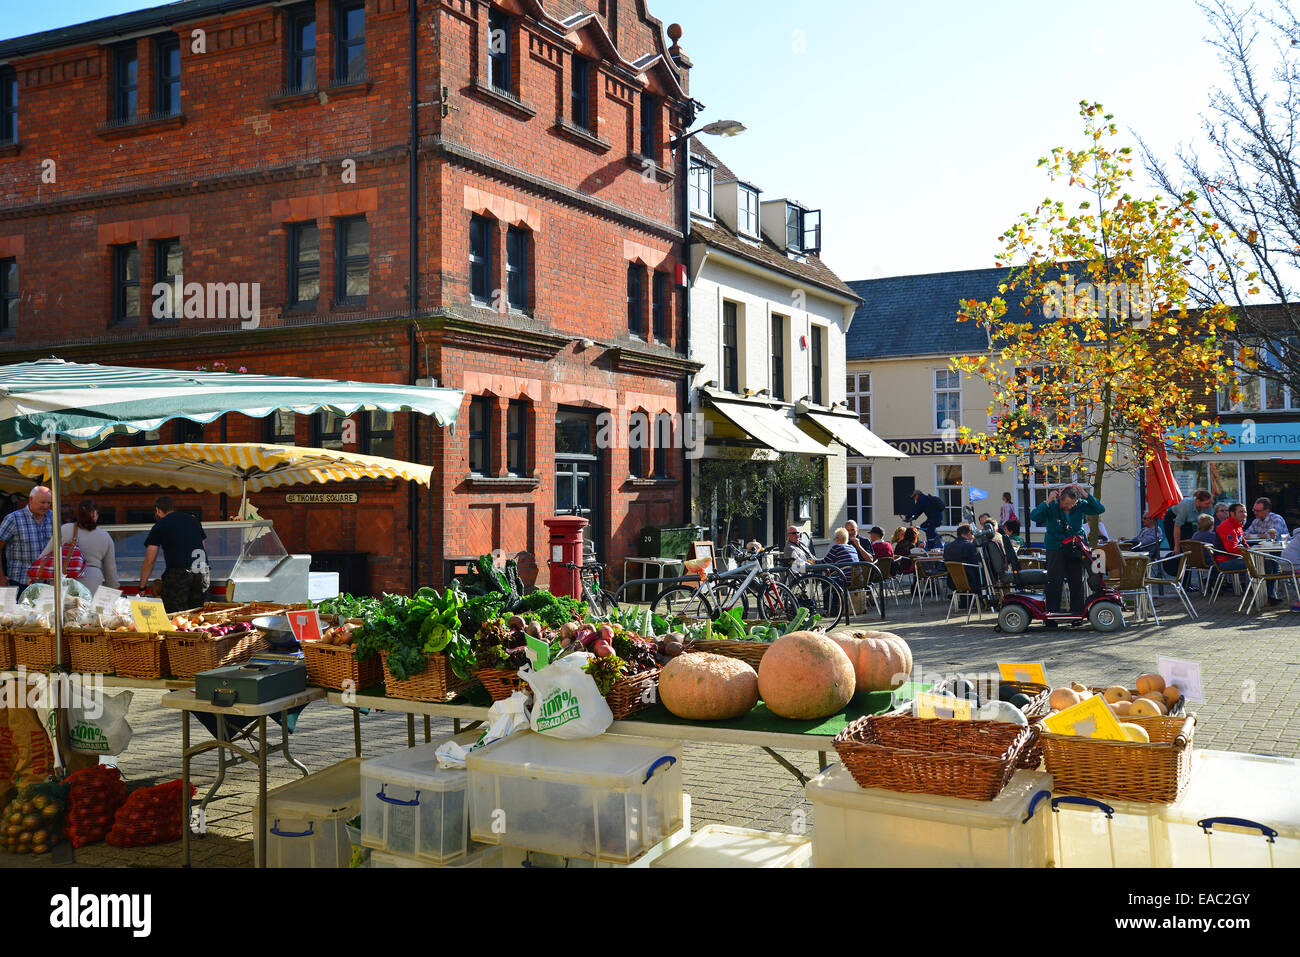 Farmer's Market stall, St Thomas' Square, Newport, Isle of Wight, Angleterre, Royaume-Uni Photo Stock